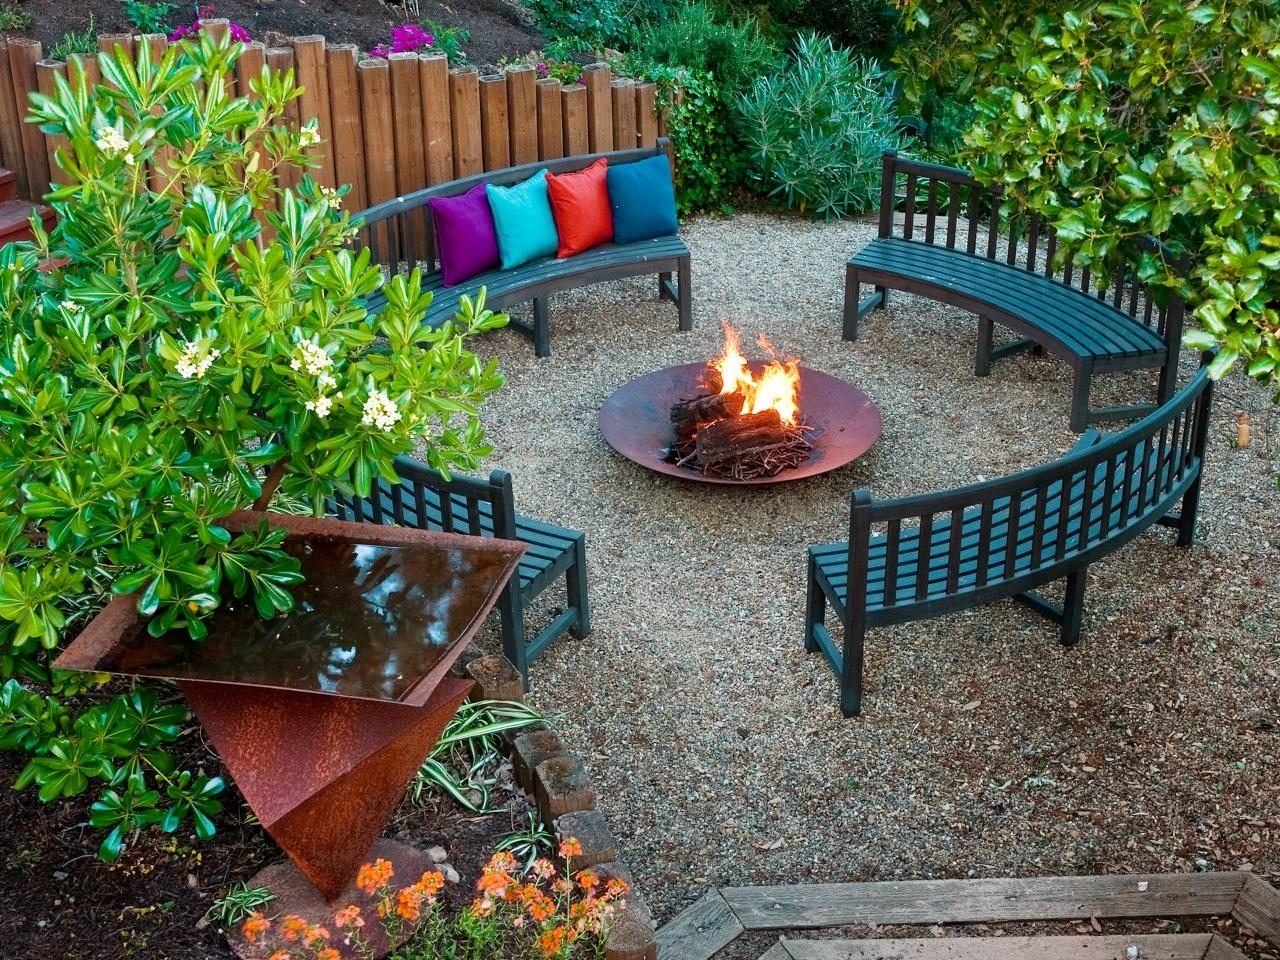 10 Best Fire Pit Ideas Outdoor Living %name 2020